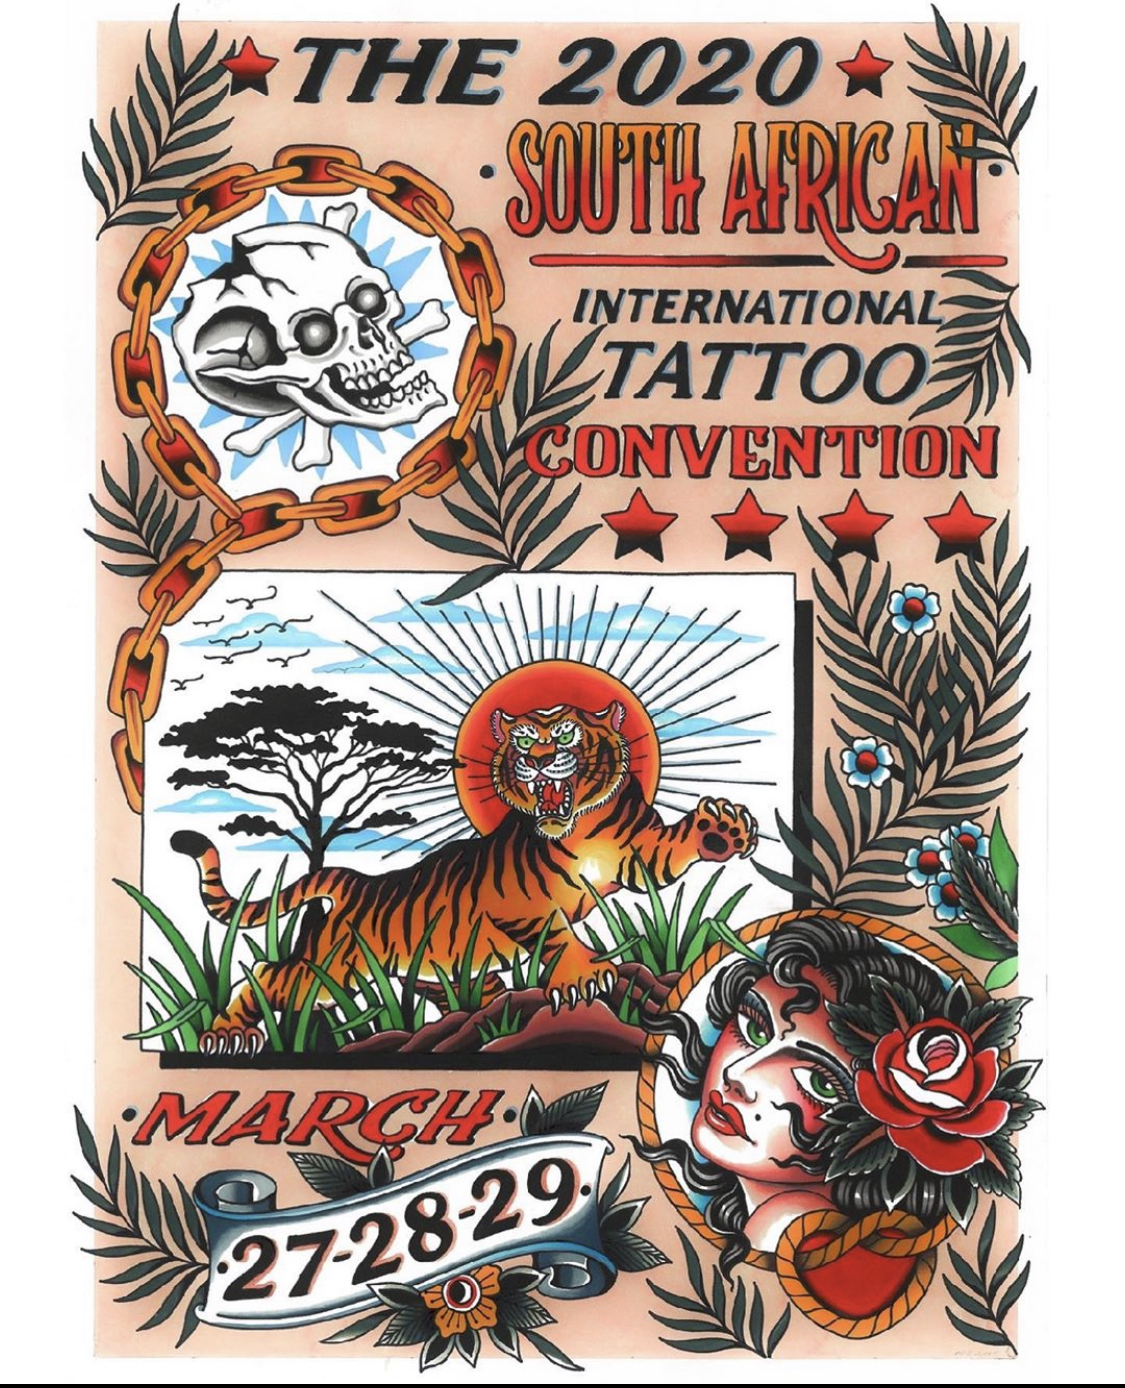 2020 South African Tattoo Convention by Matt Cannon